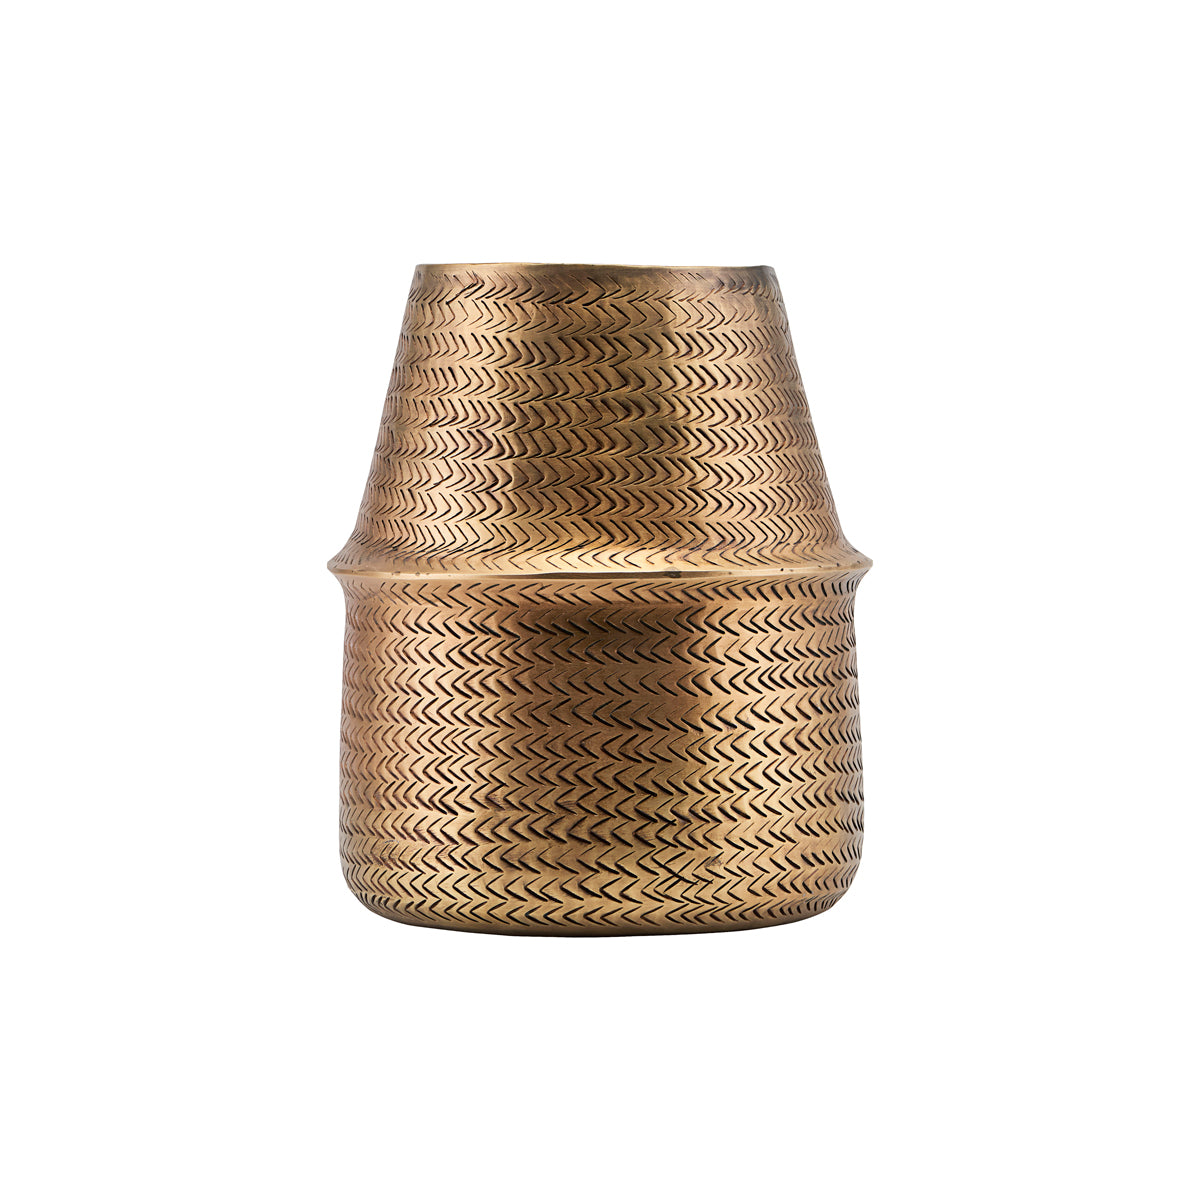 House Doctor Planter, Rattan, Brass finish